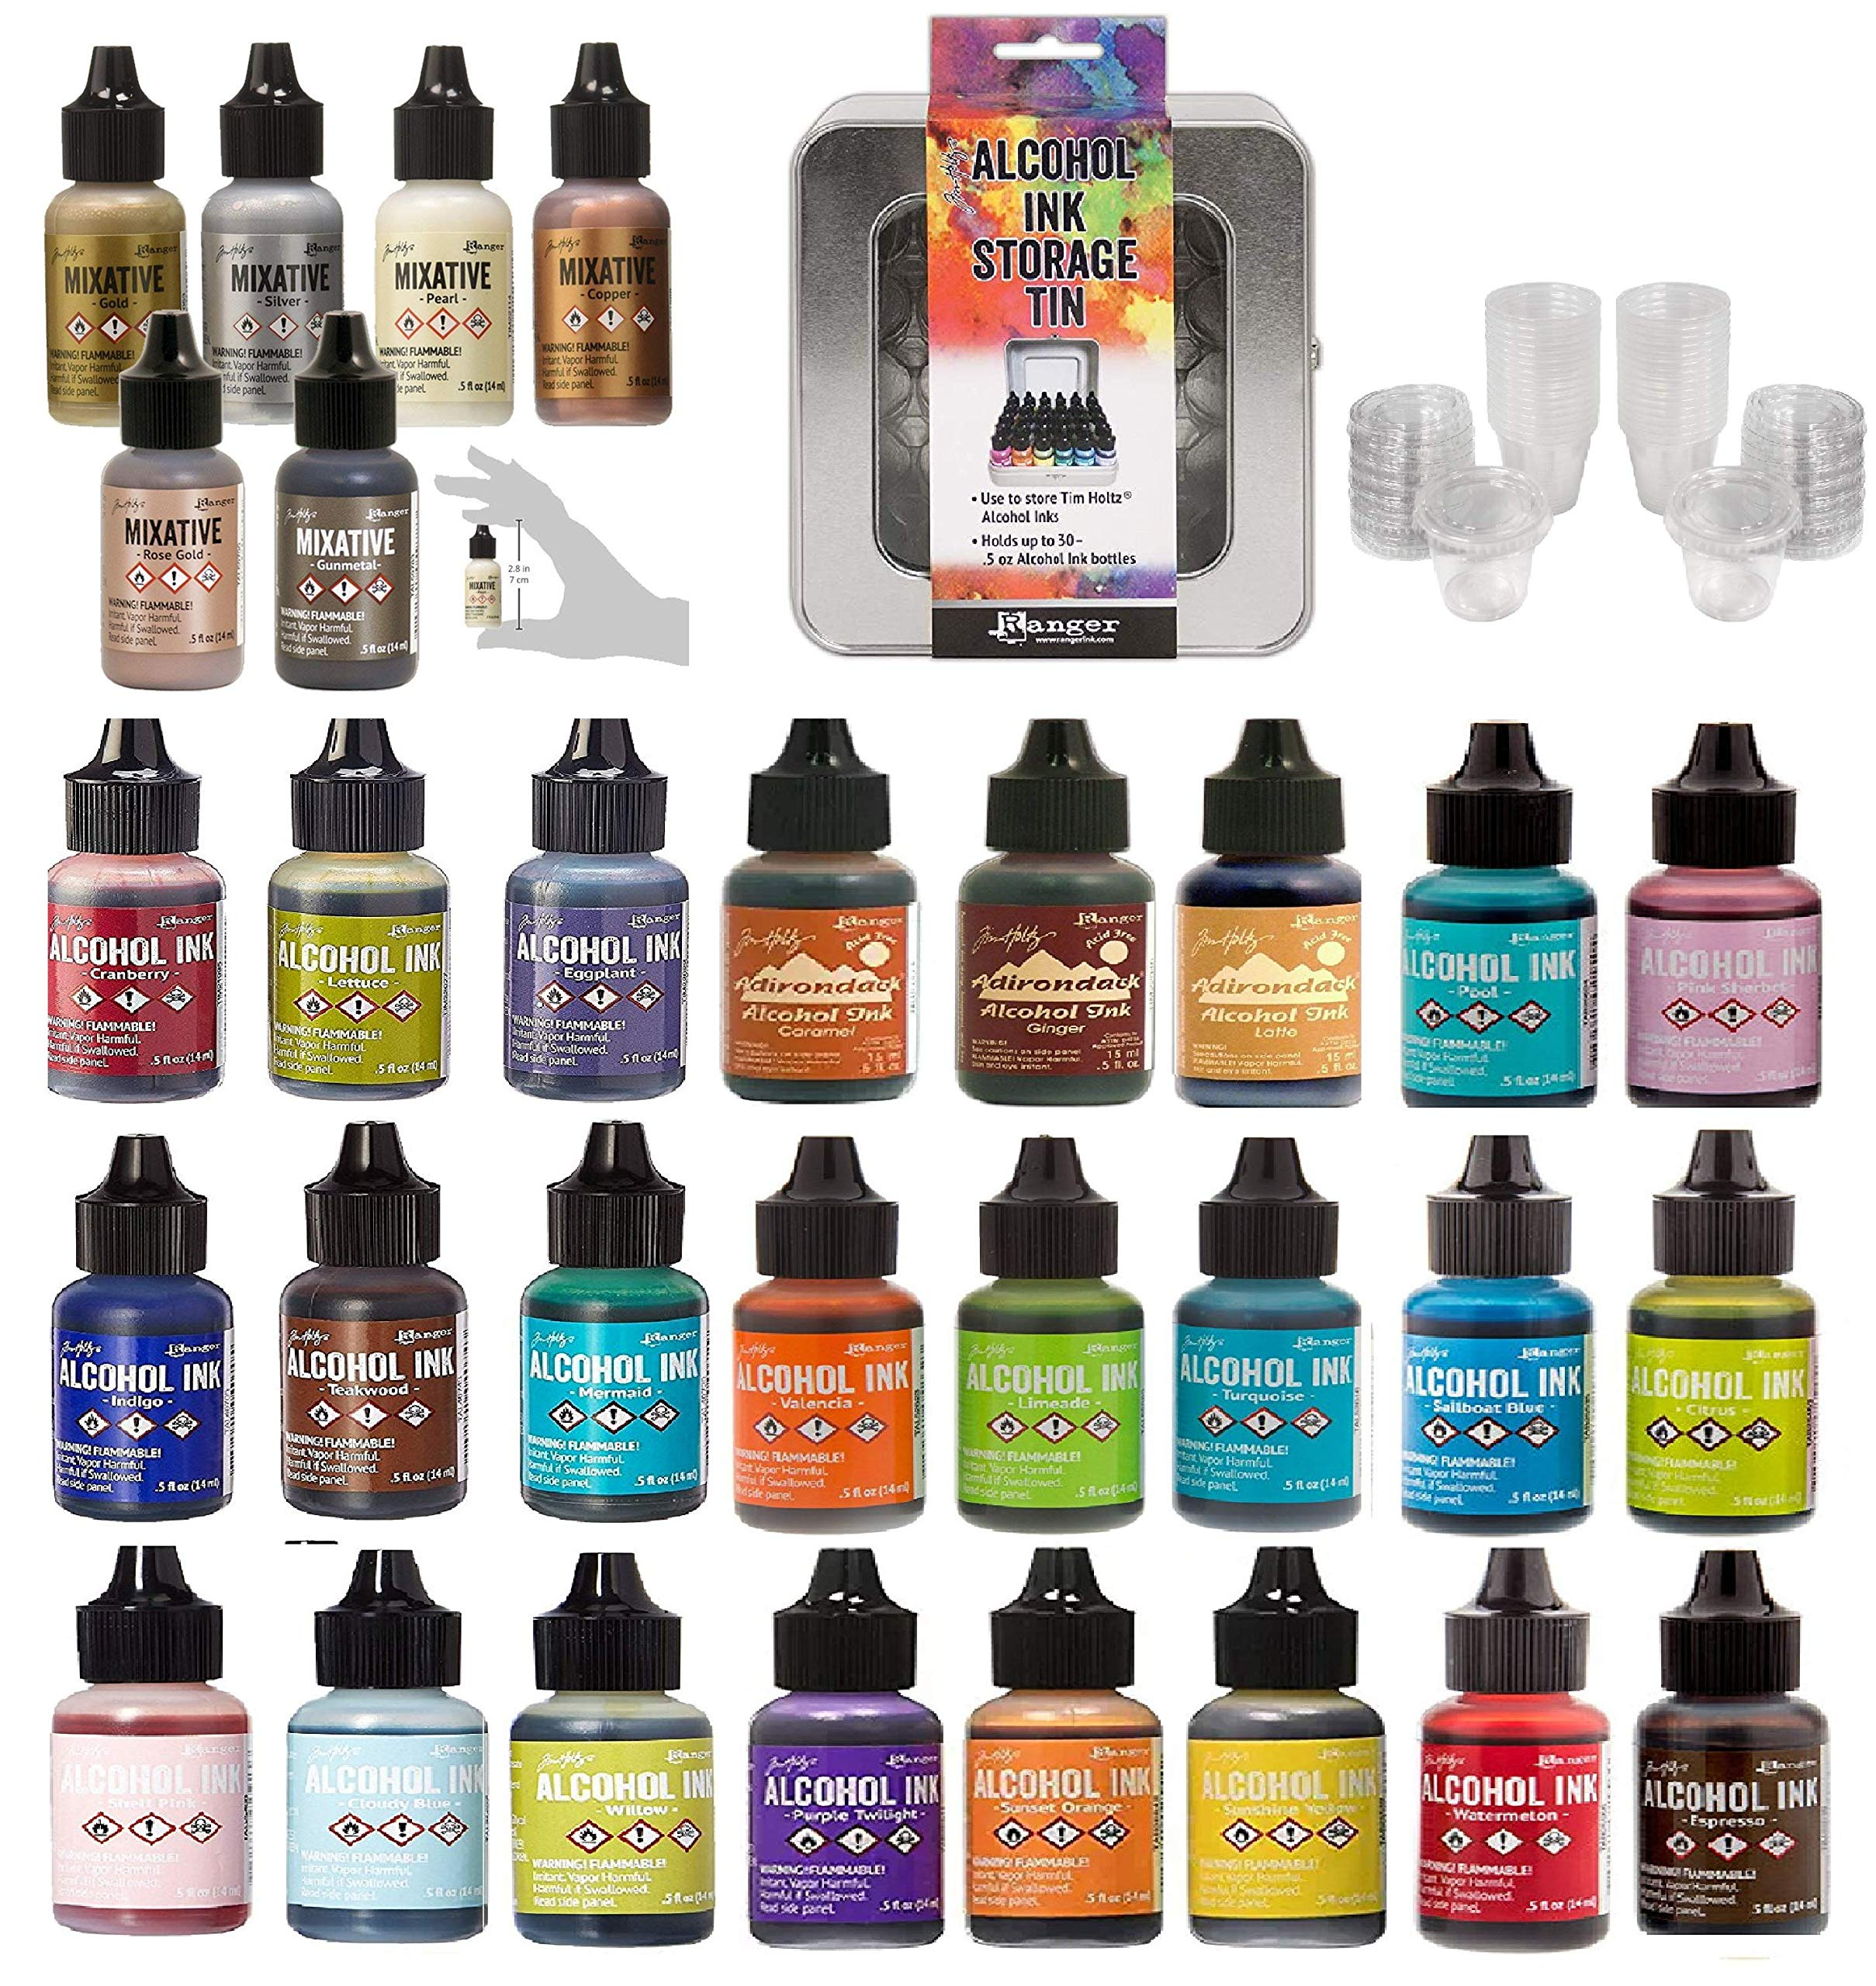 Ranger Tim Holtz Bundle Alcohol Ink x 24 Colors Metallic Mixatives 6 Colors: Silver, Gold, Rose Gold, Gunmetal, Pearl, Copper, Storage Tin and Regent Cups